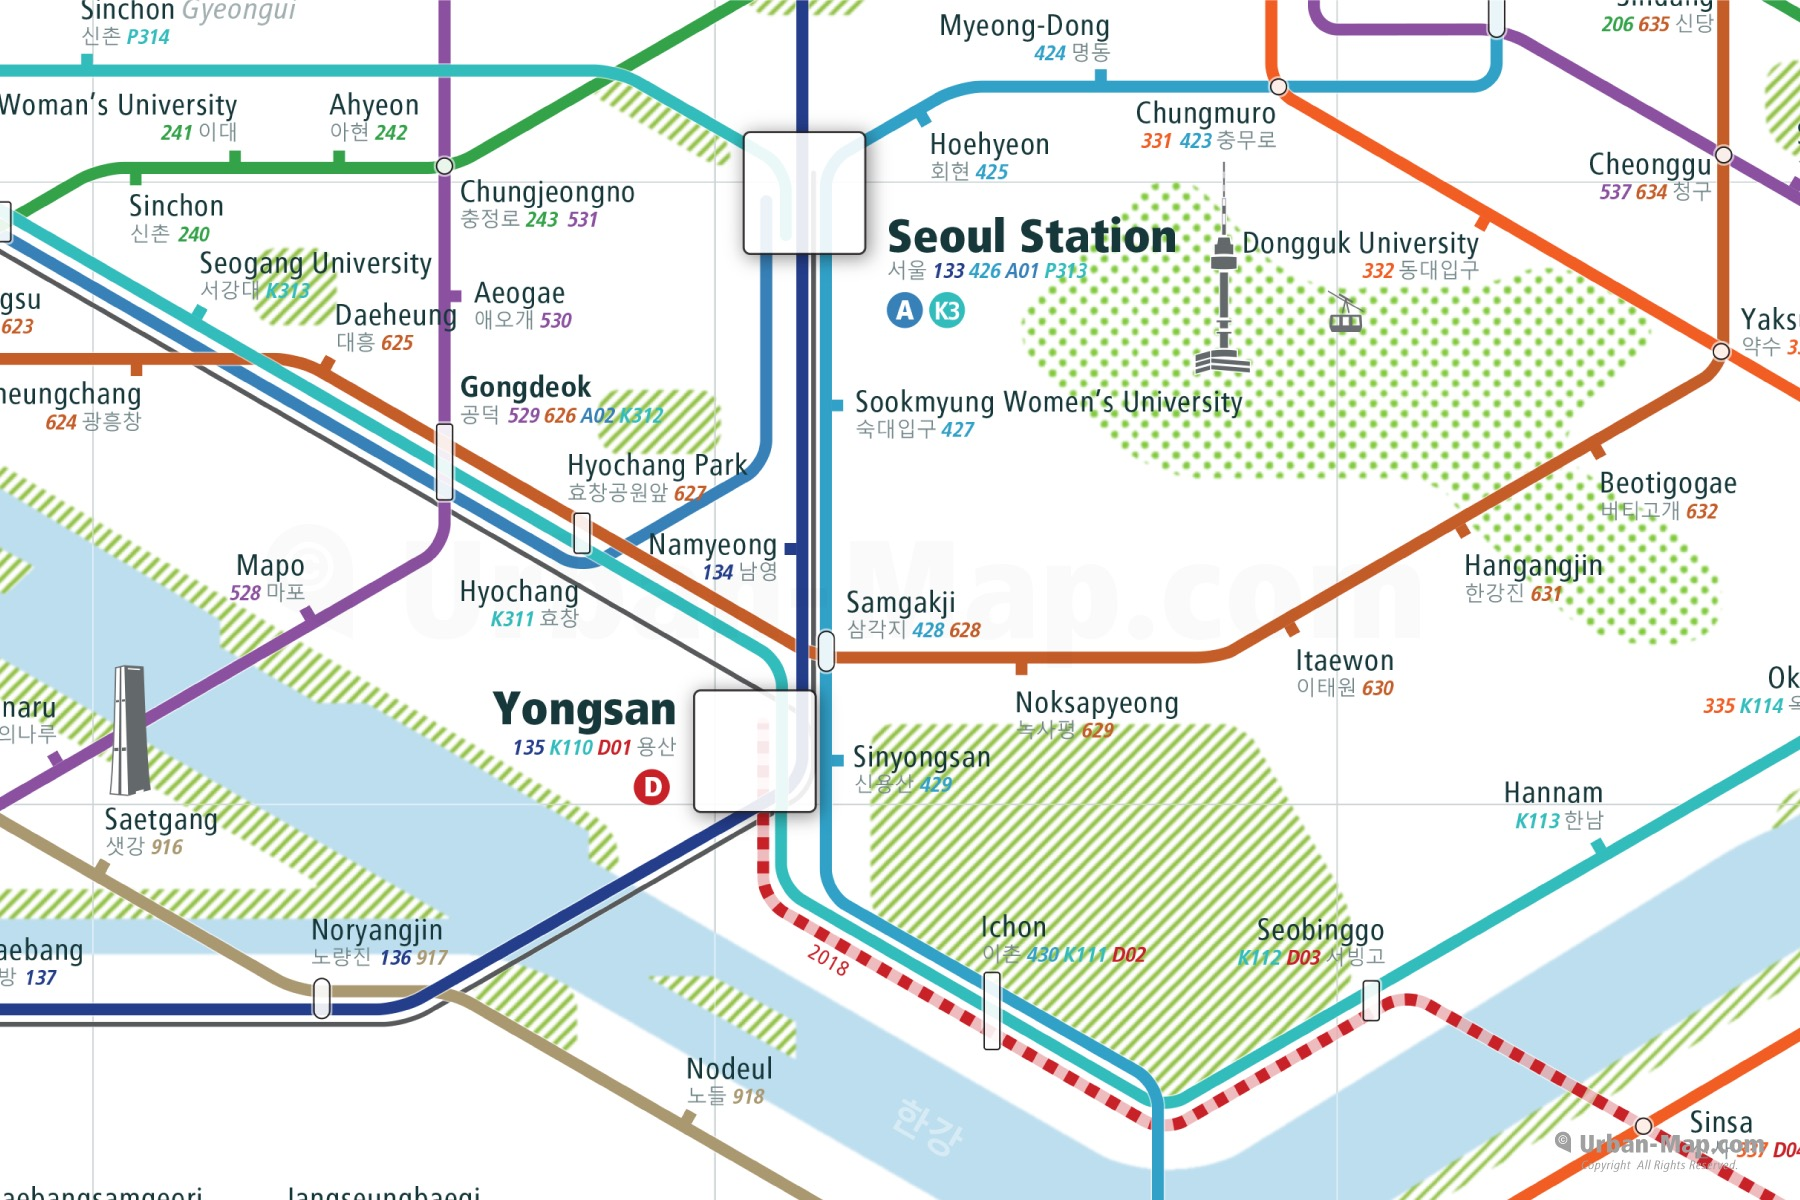 Seoul City Rail Map shows the train and public transportation routes of metro - Close-Up